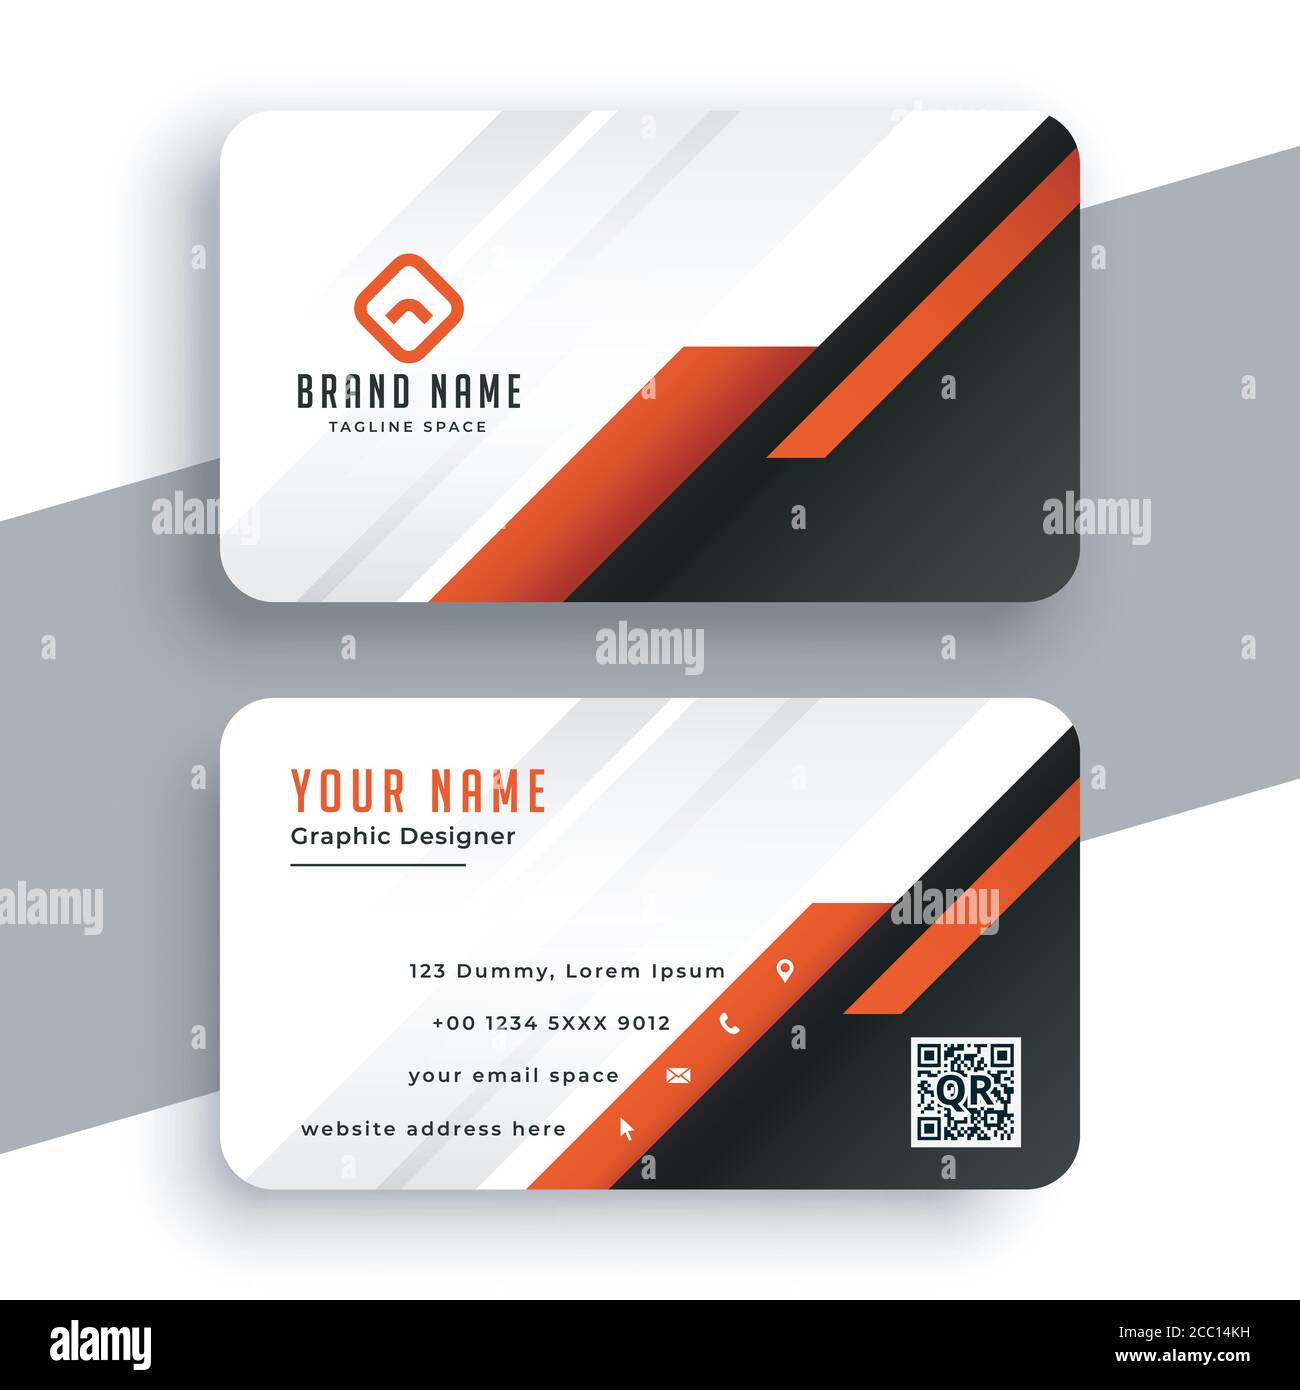 Modern professional Business Card Template.Simple Business Card Intended For Web Design Business Cards Templates